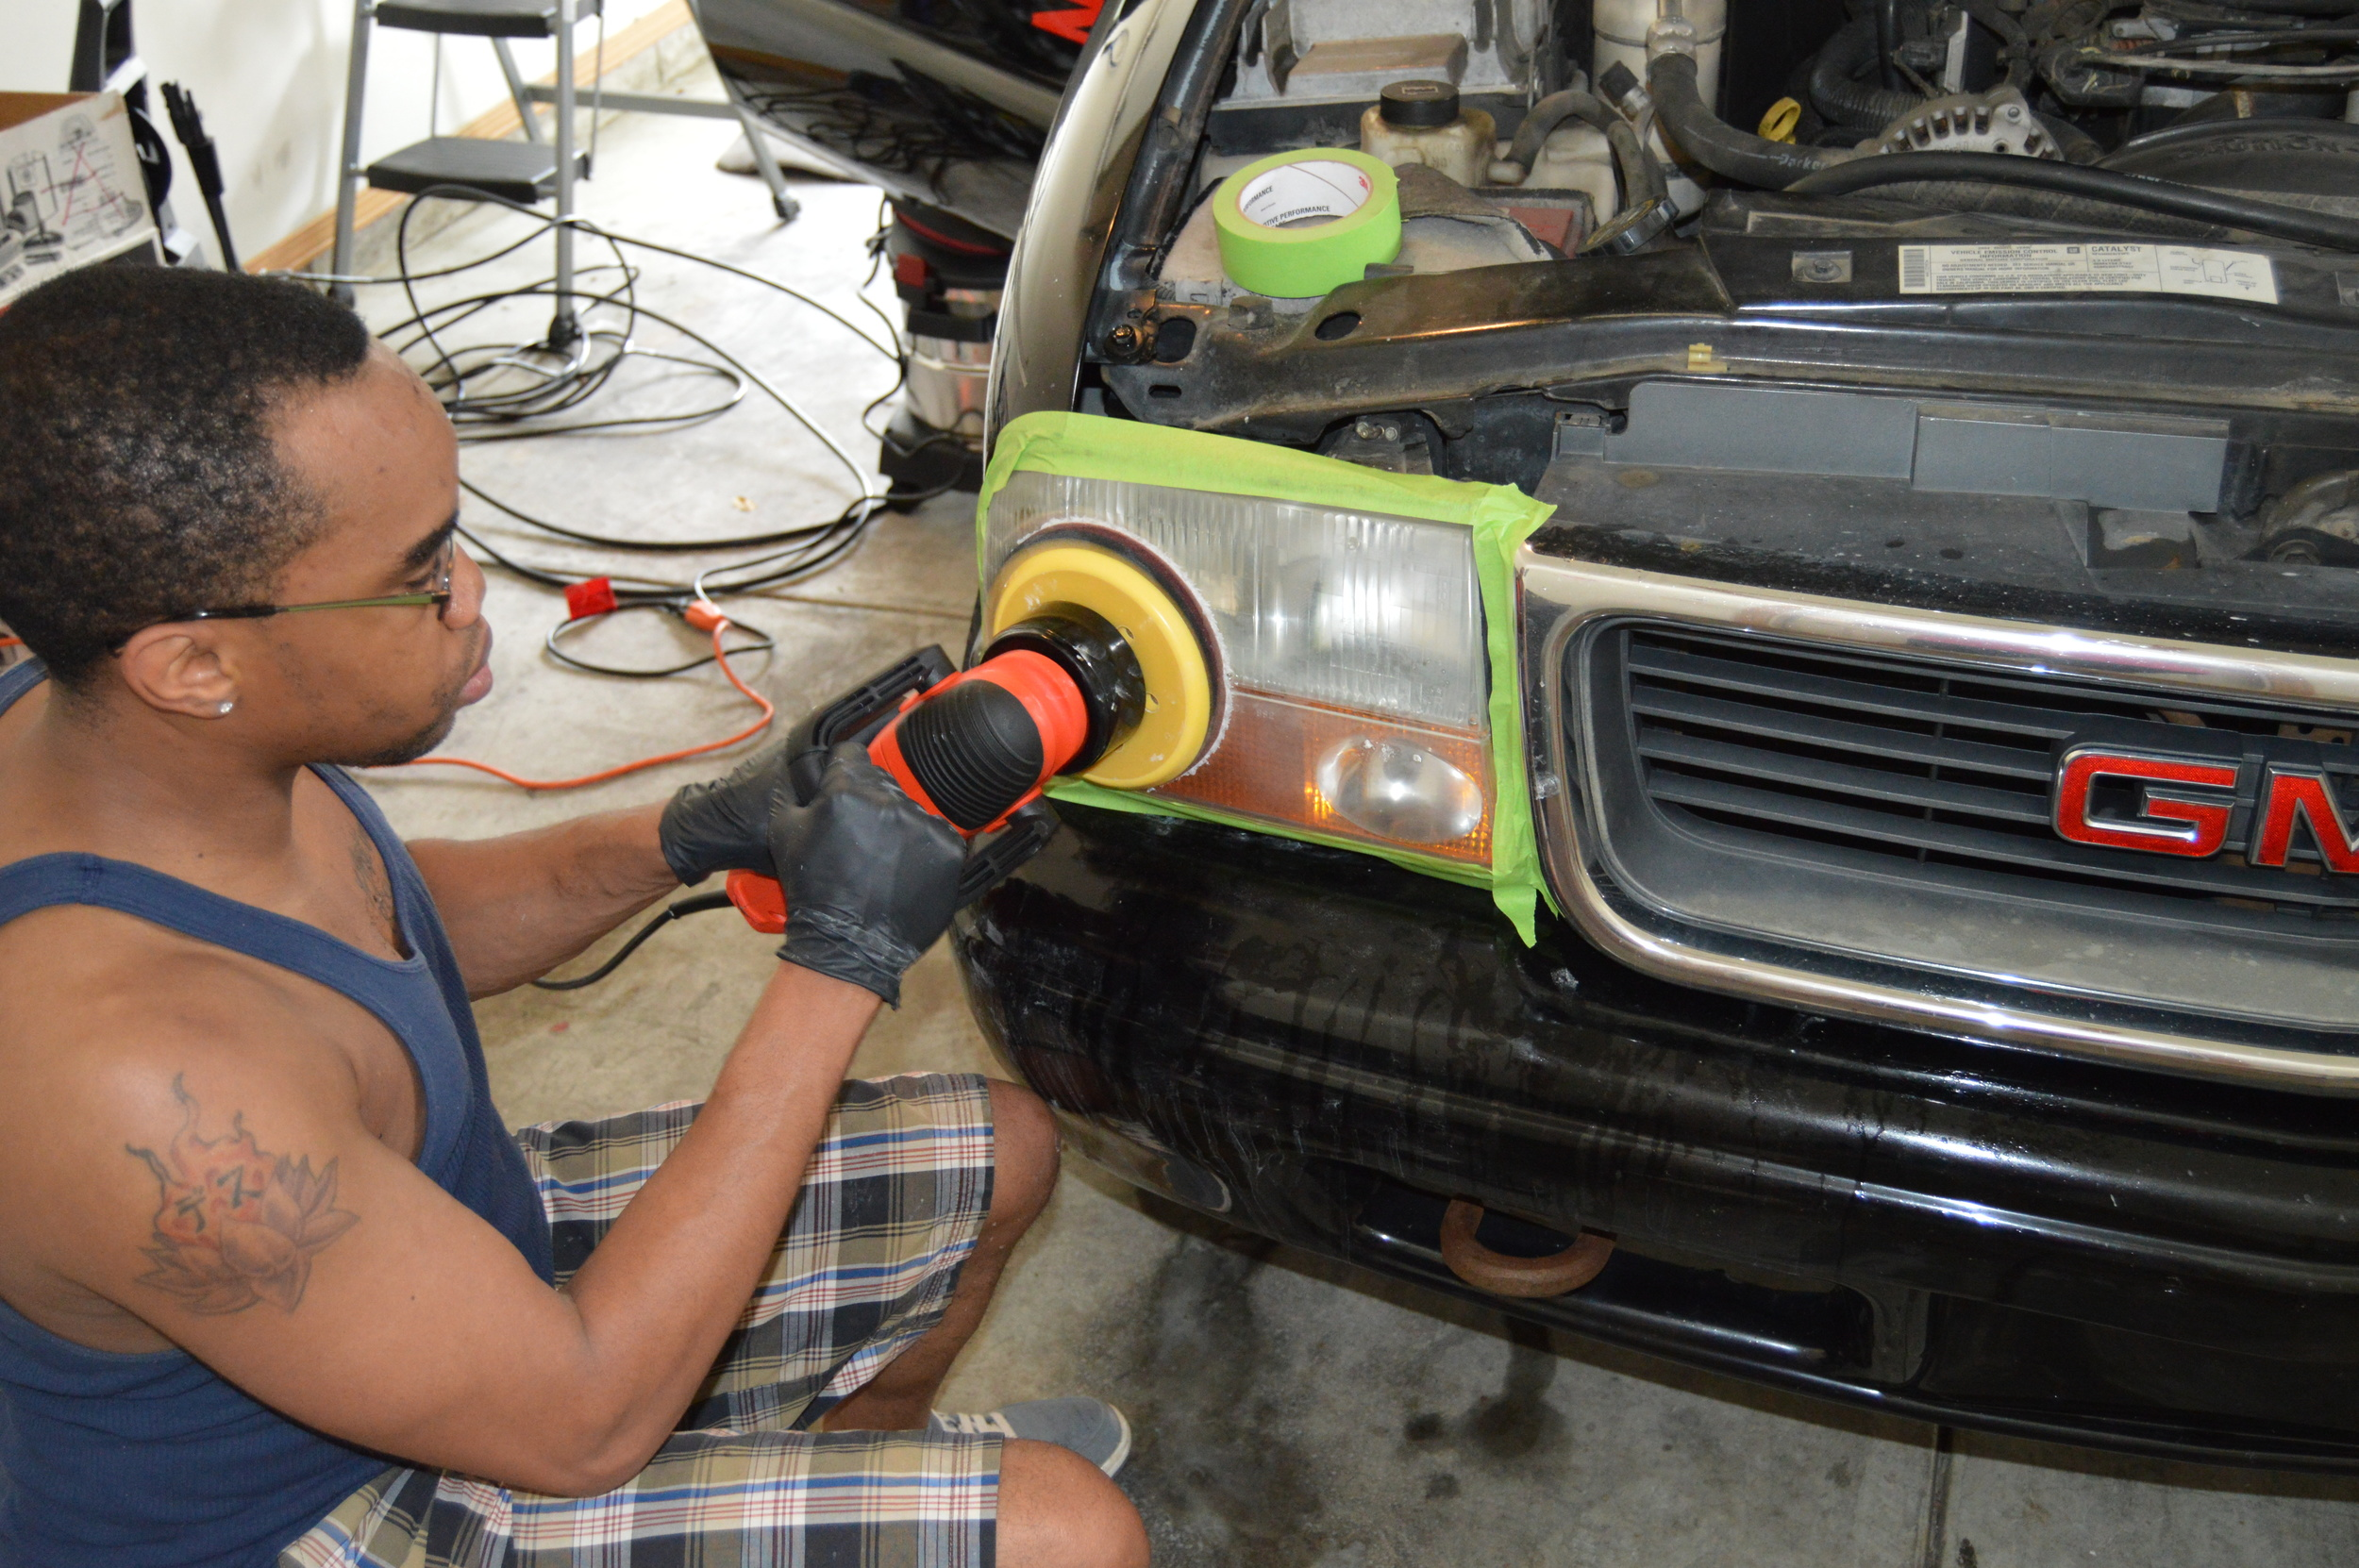 After sanding off headlight oxidation headlights are polished to a like new state.